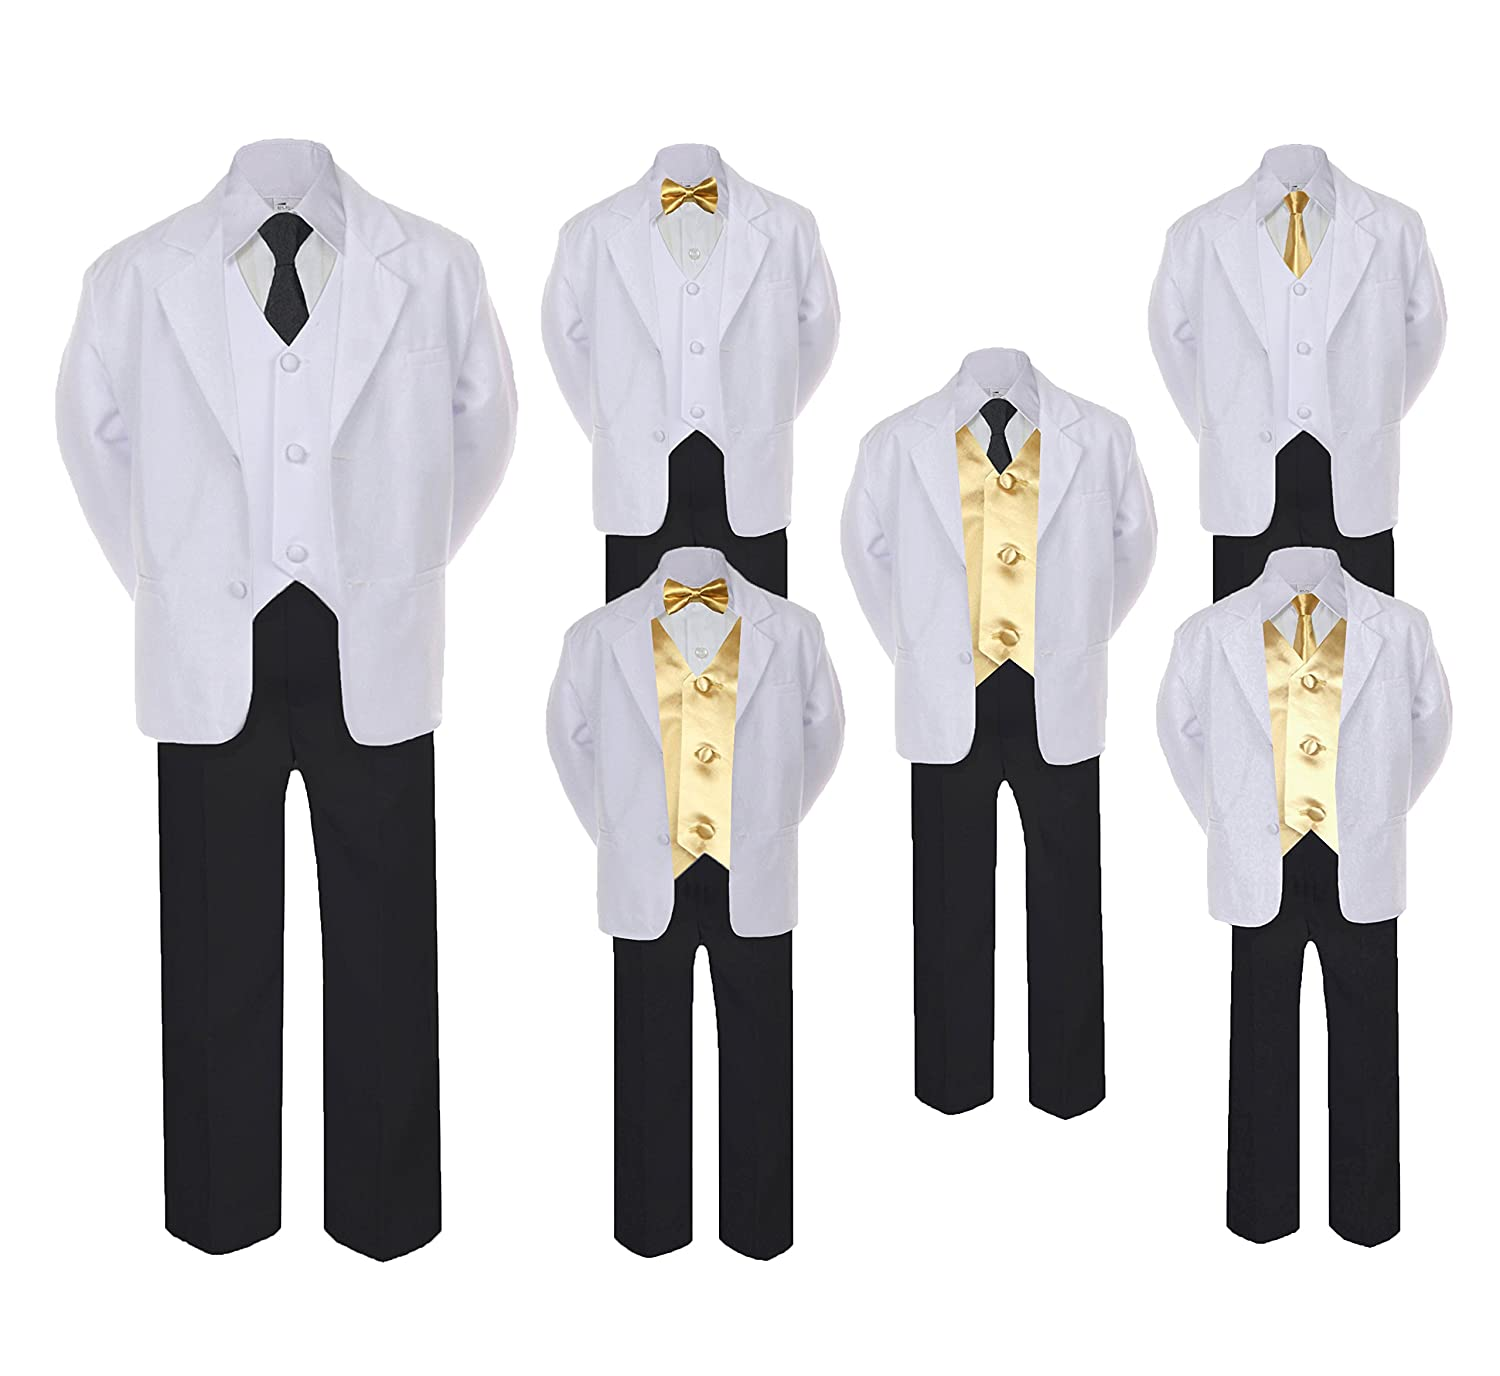 Unotux 5-7pc Formal Black White Suit Set Mustard Bow Long Tie Vest Boy Baby Sm-20 Teen